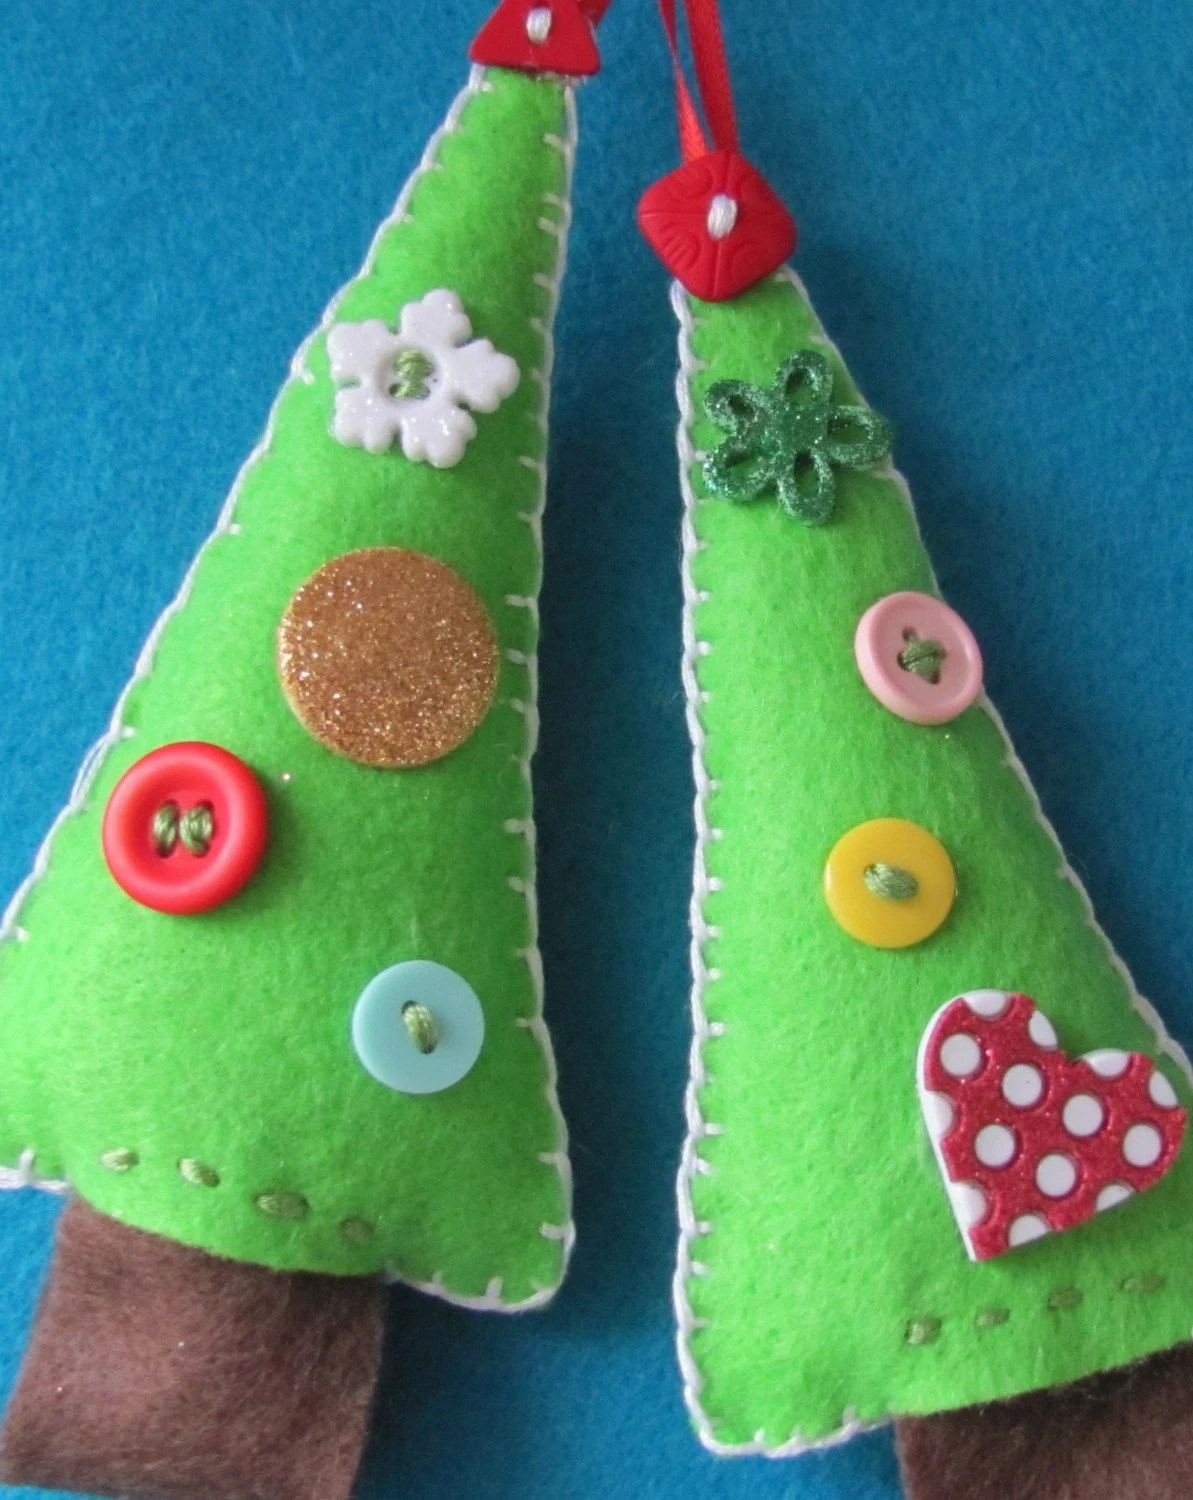 Bling and Button Felt Christmas Trees-Set of 2